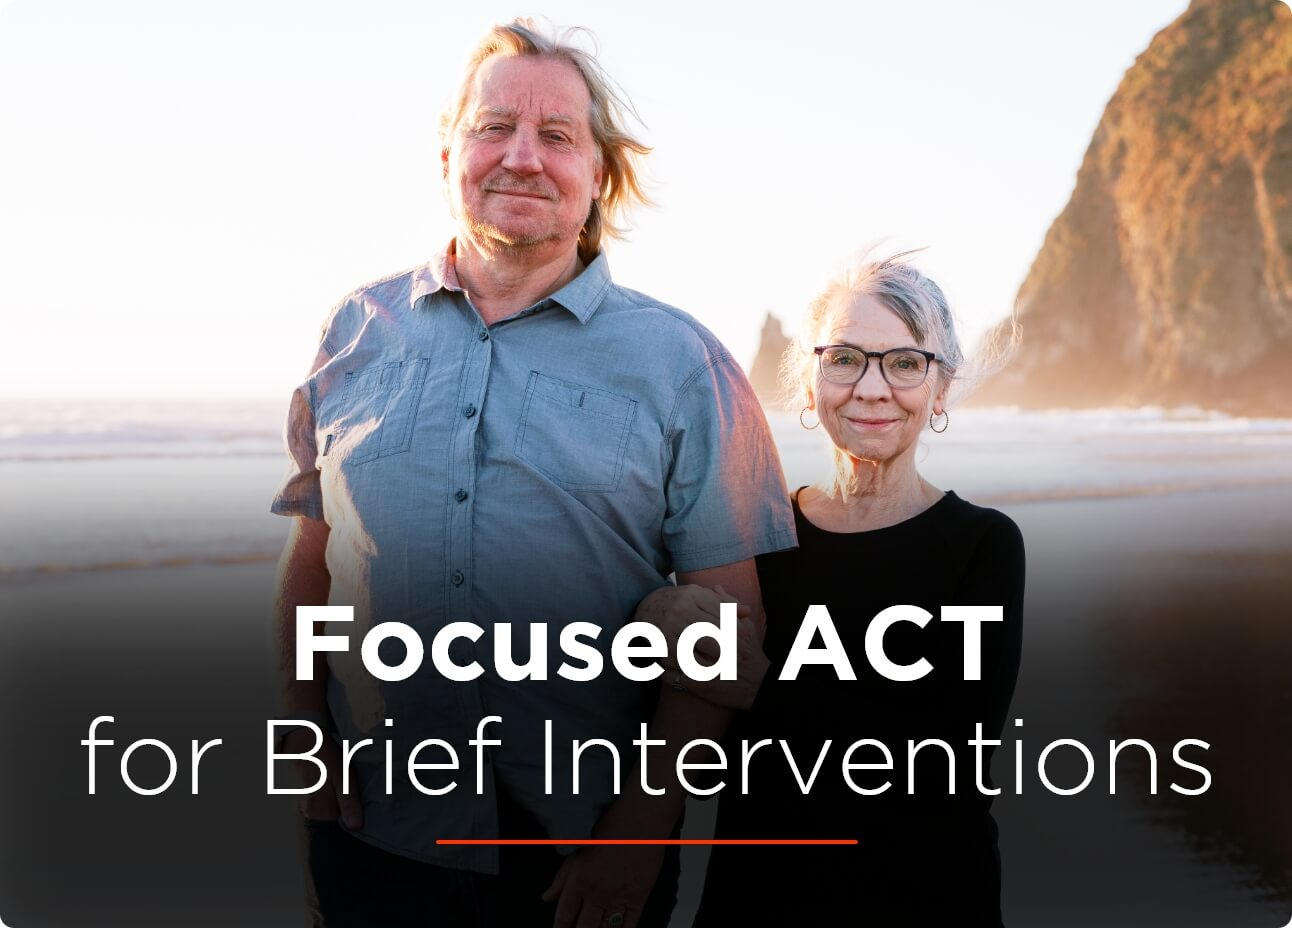 Sneak-Peek-Focused-ACT-for-Brief-Interventions@2x